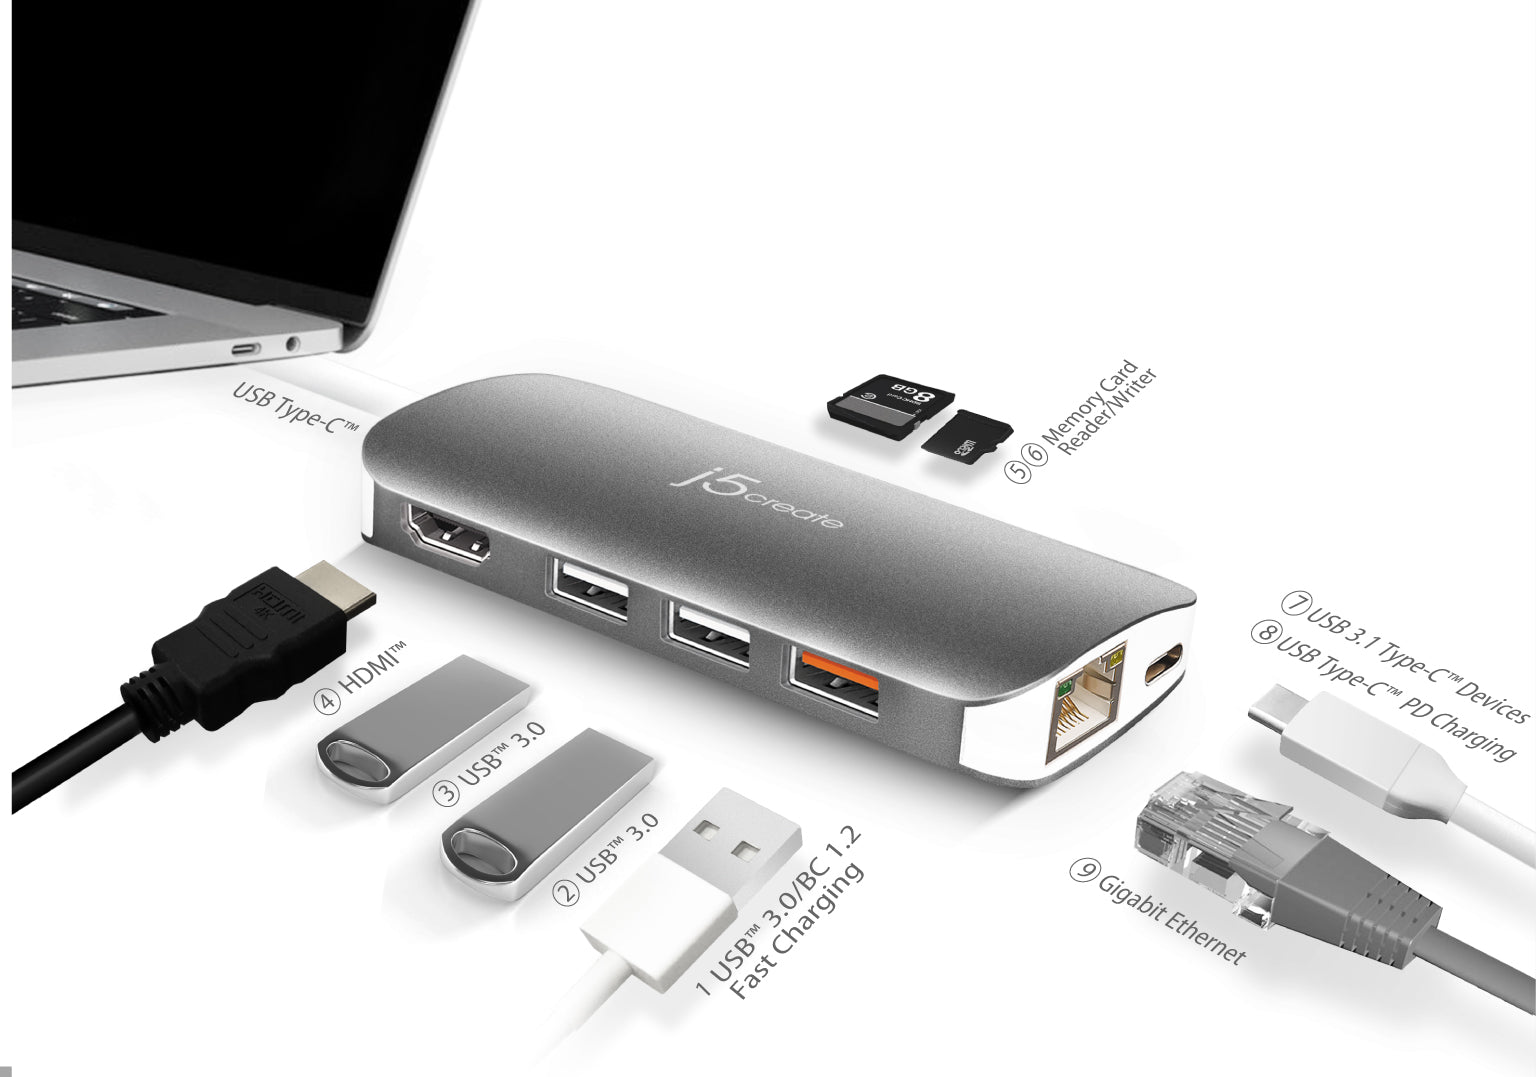 Computer /& Networking 3 in 1 Type-C to Type-C Support PD Fast Charging 2 x USB Interfaces Charging HUB Card Reader Black